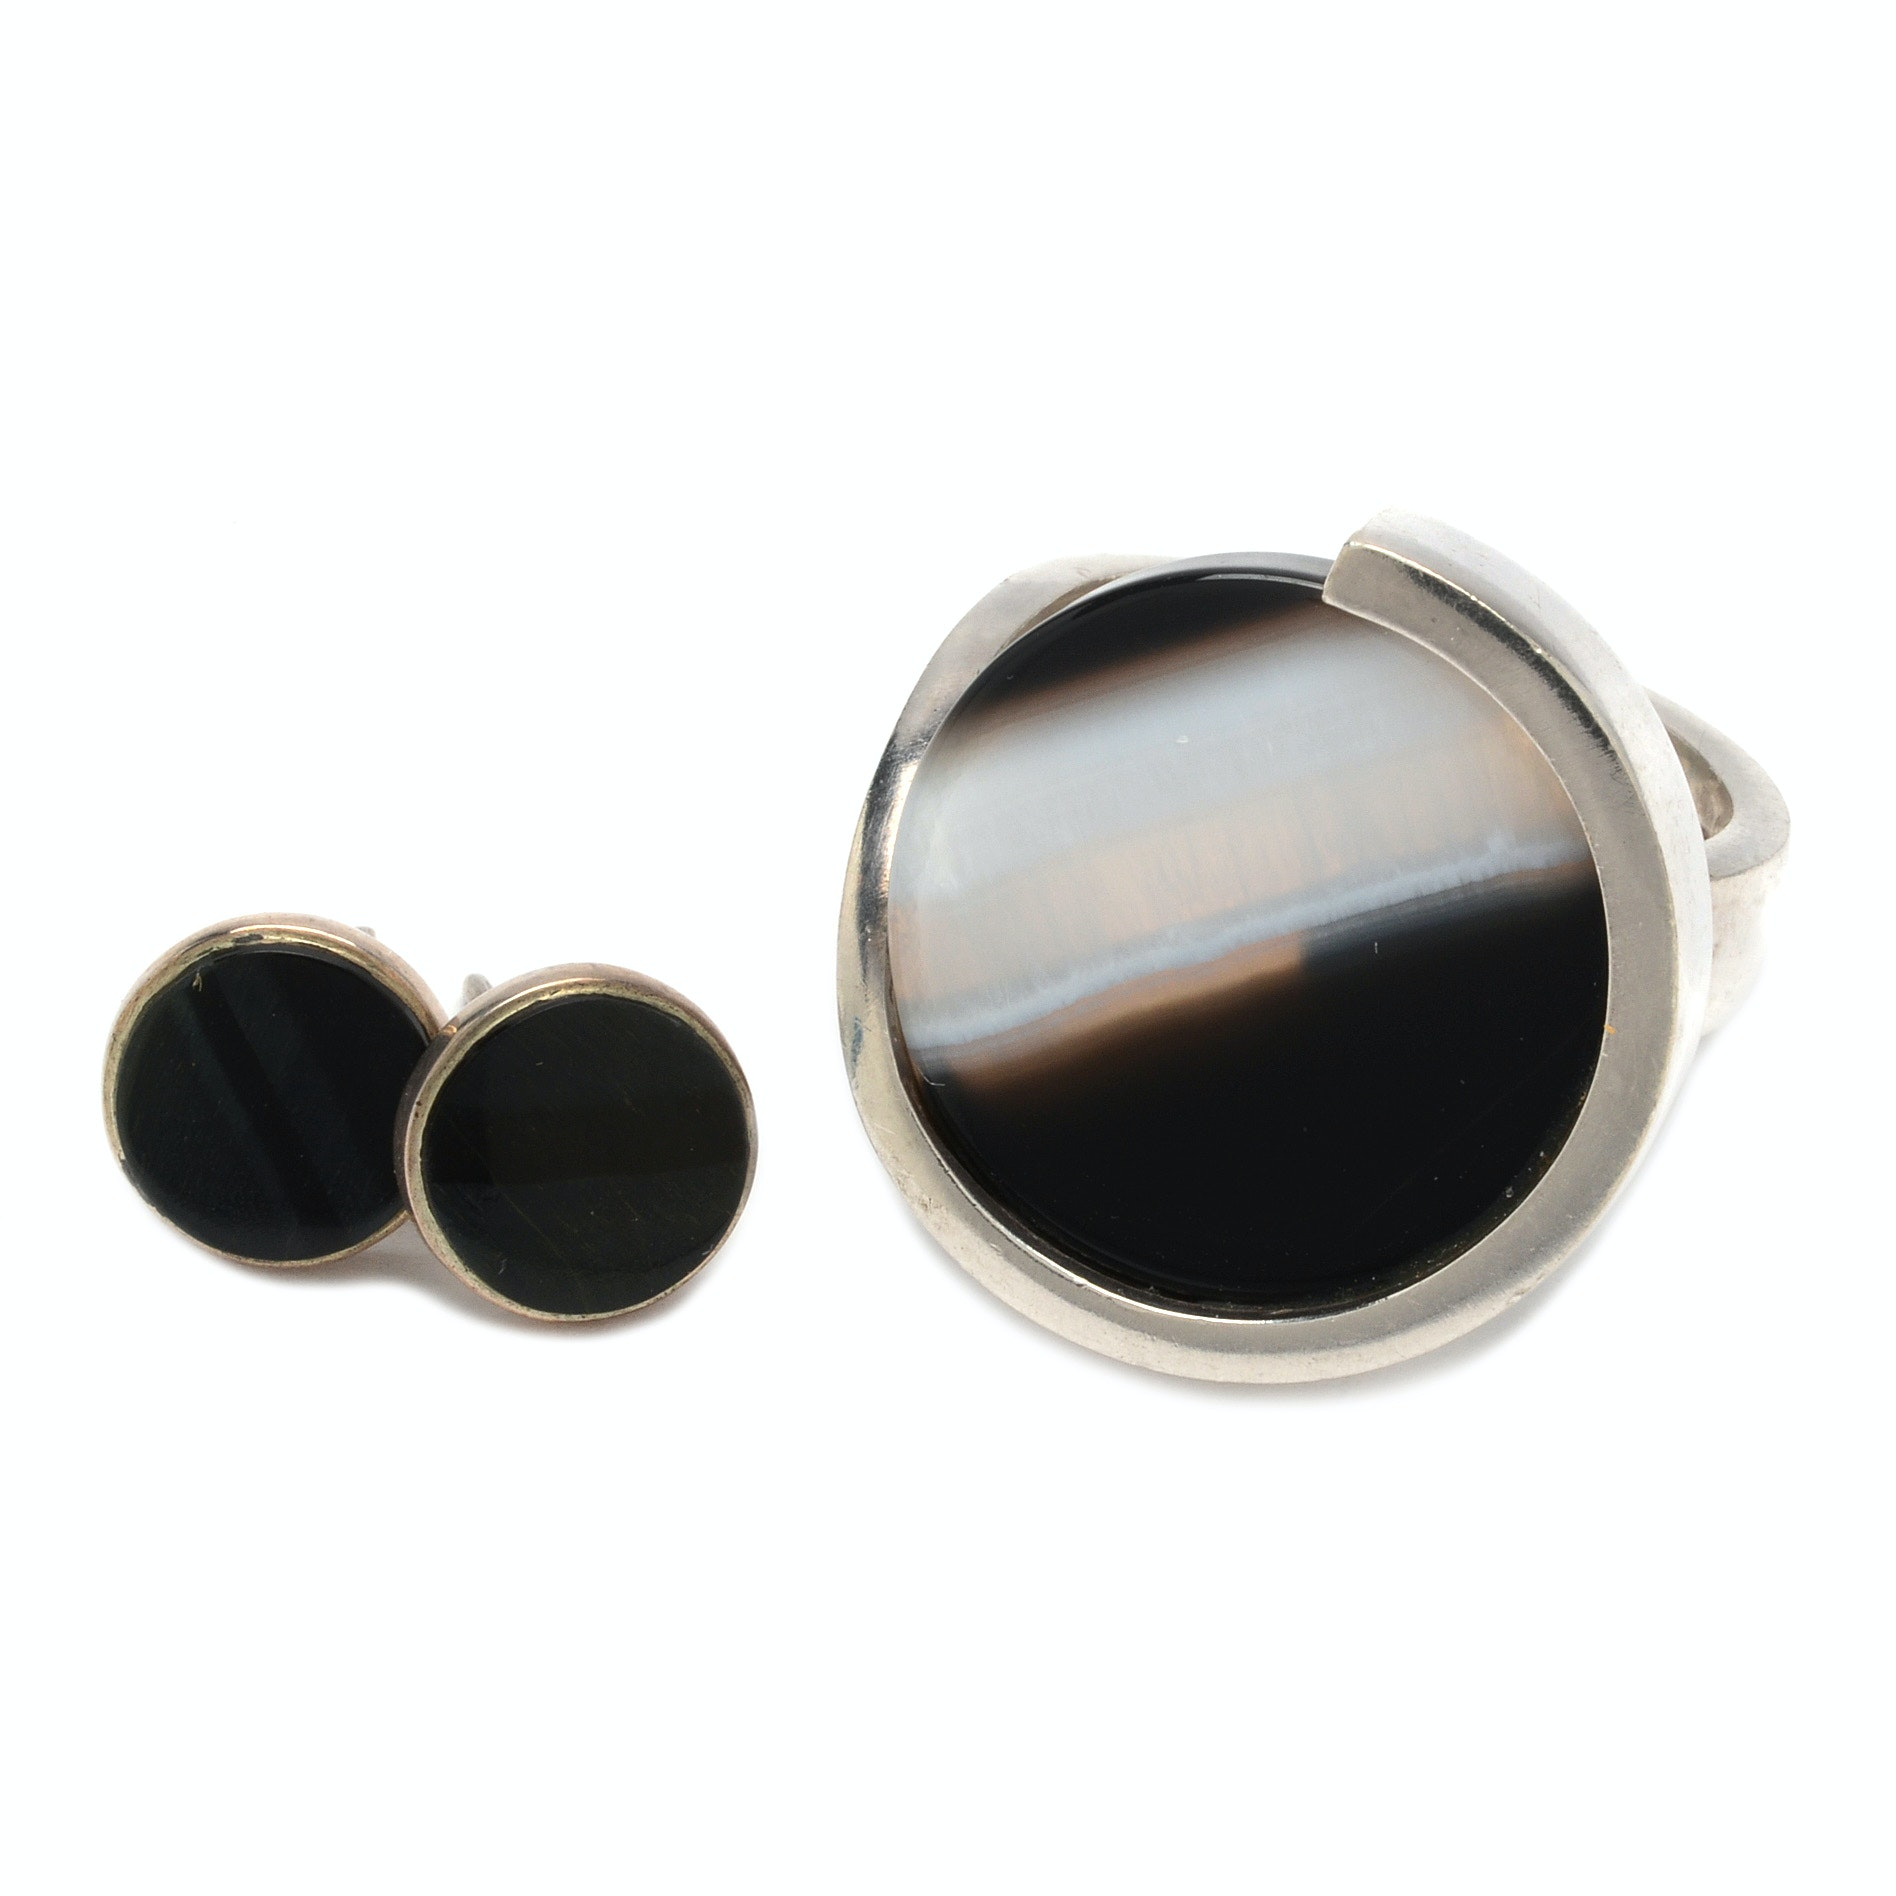 Jens Asby Design Danish Modern Sterling Silver Ring and Onyx Earrings